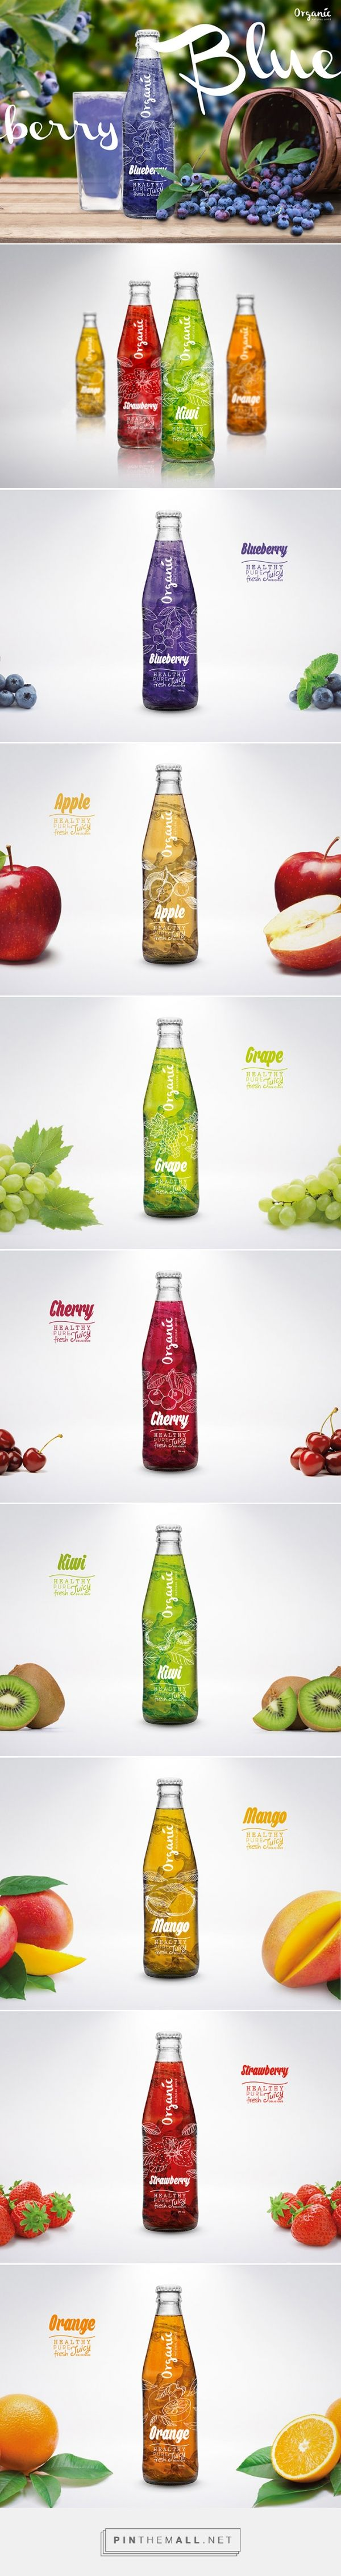 Organic Natural Juice concept by Mario Castillo. Pin curated by #SFields99 #packaging #design